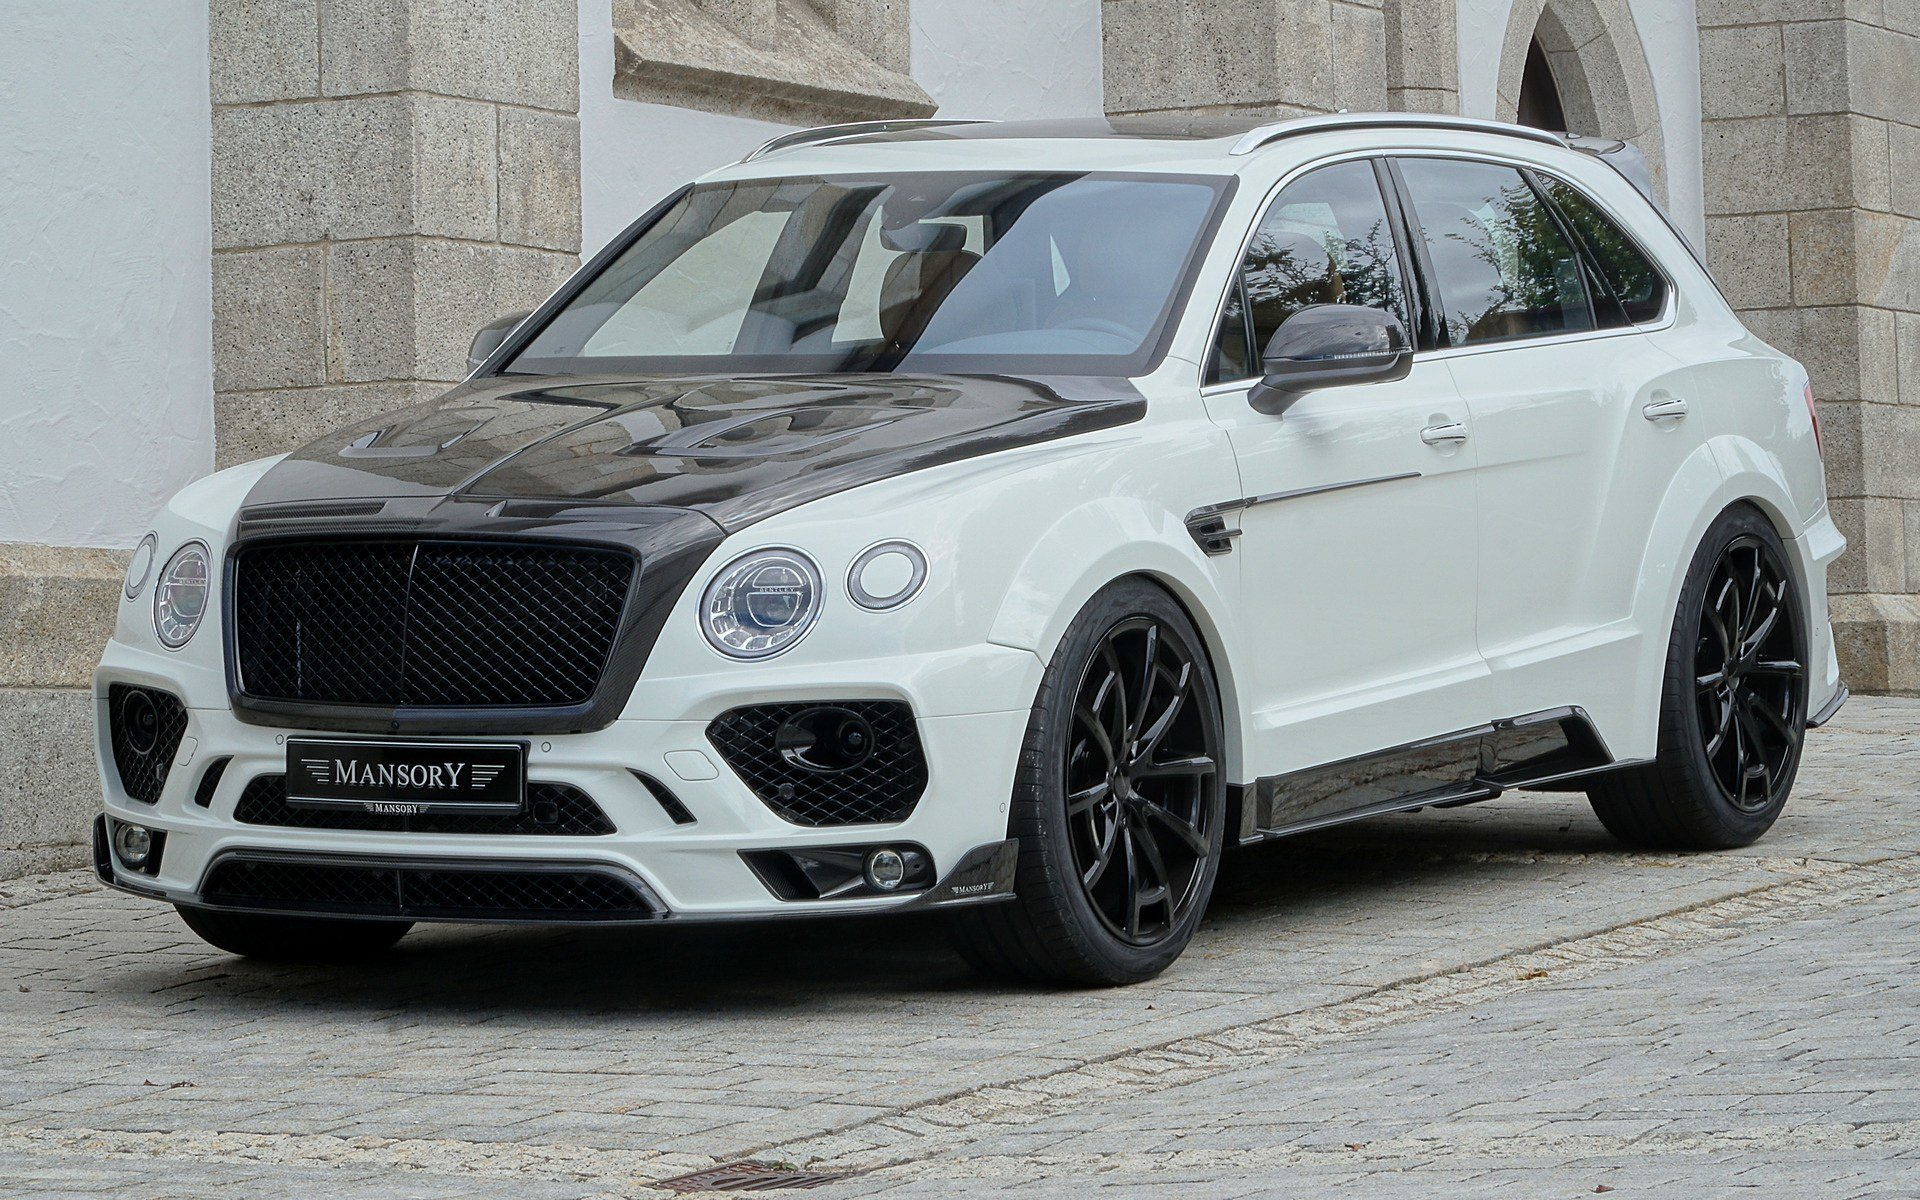 Latest 2016 Bentley Bentayga By Mansory Wallpapers And Hd Free Download